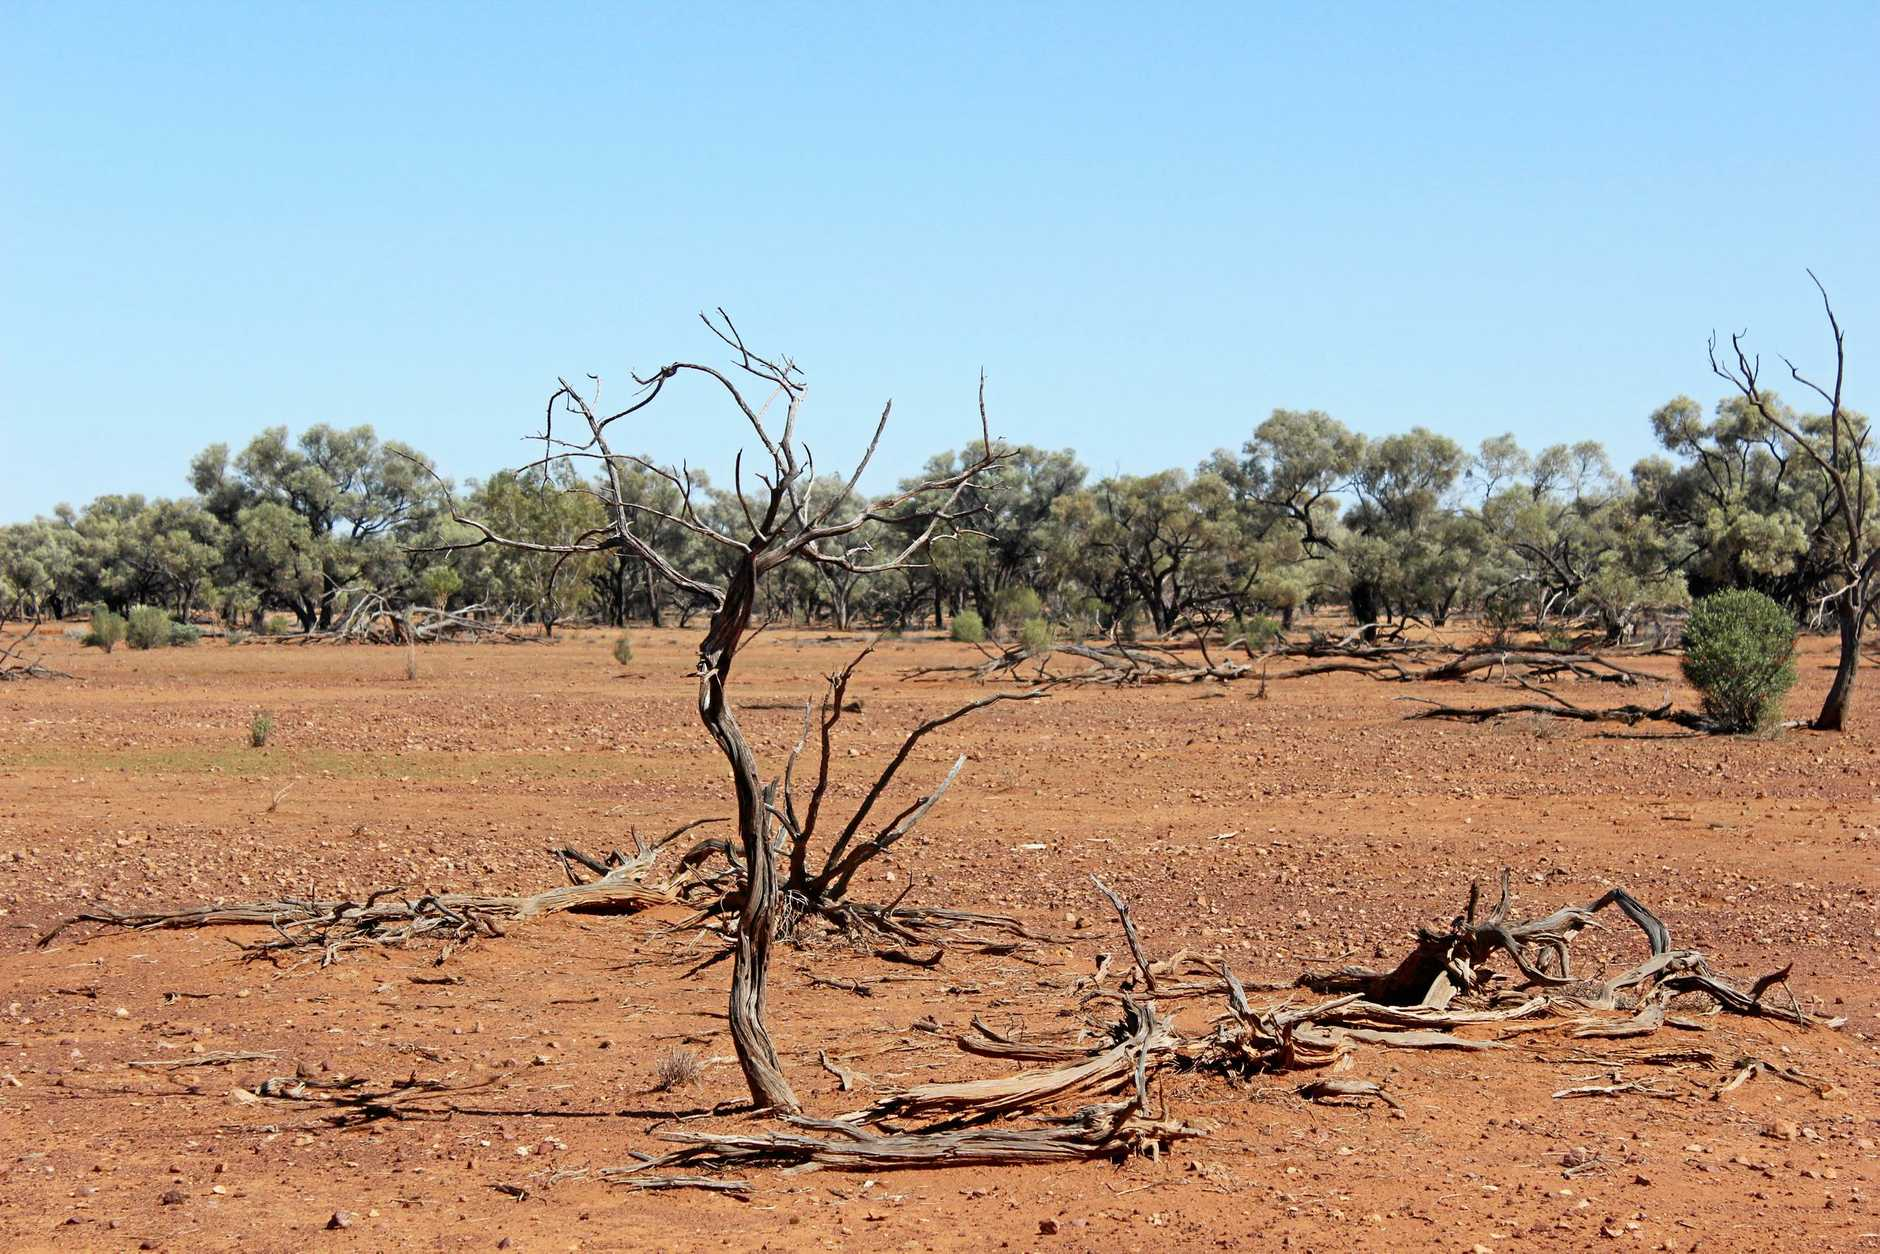 Parched pastures like this have inspired Woolworths to support the Rural Aid Buy A Bale program.